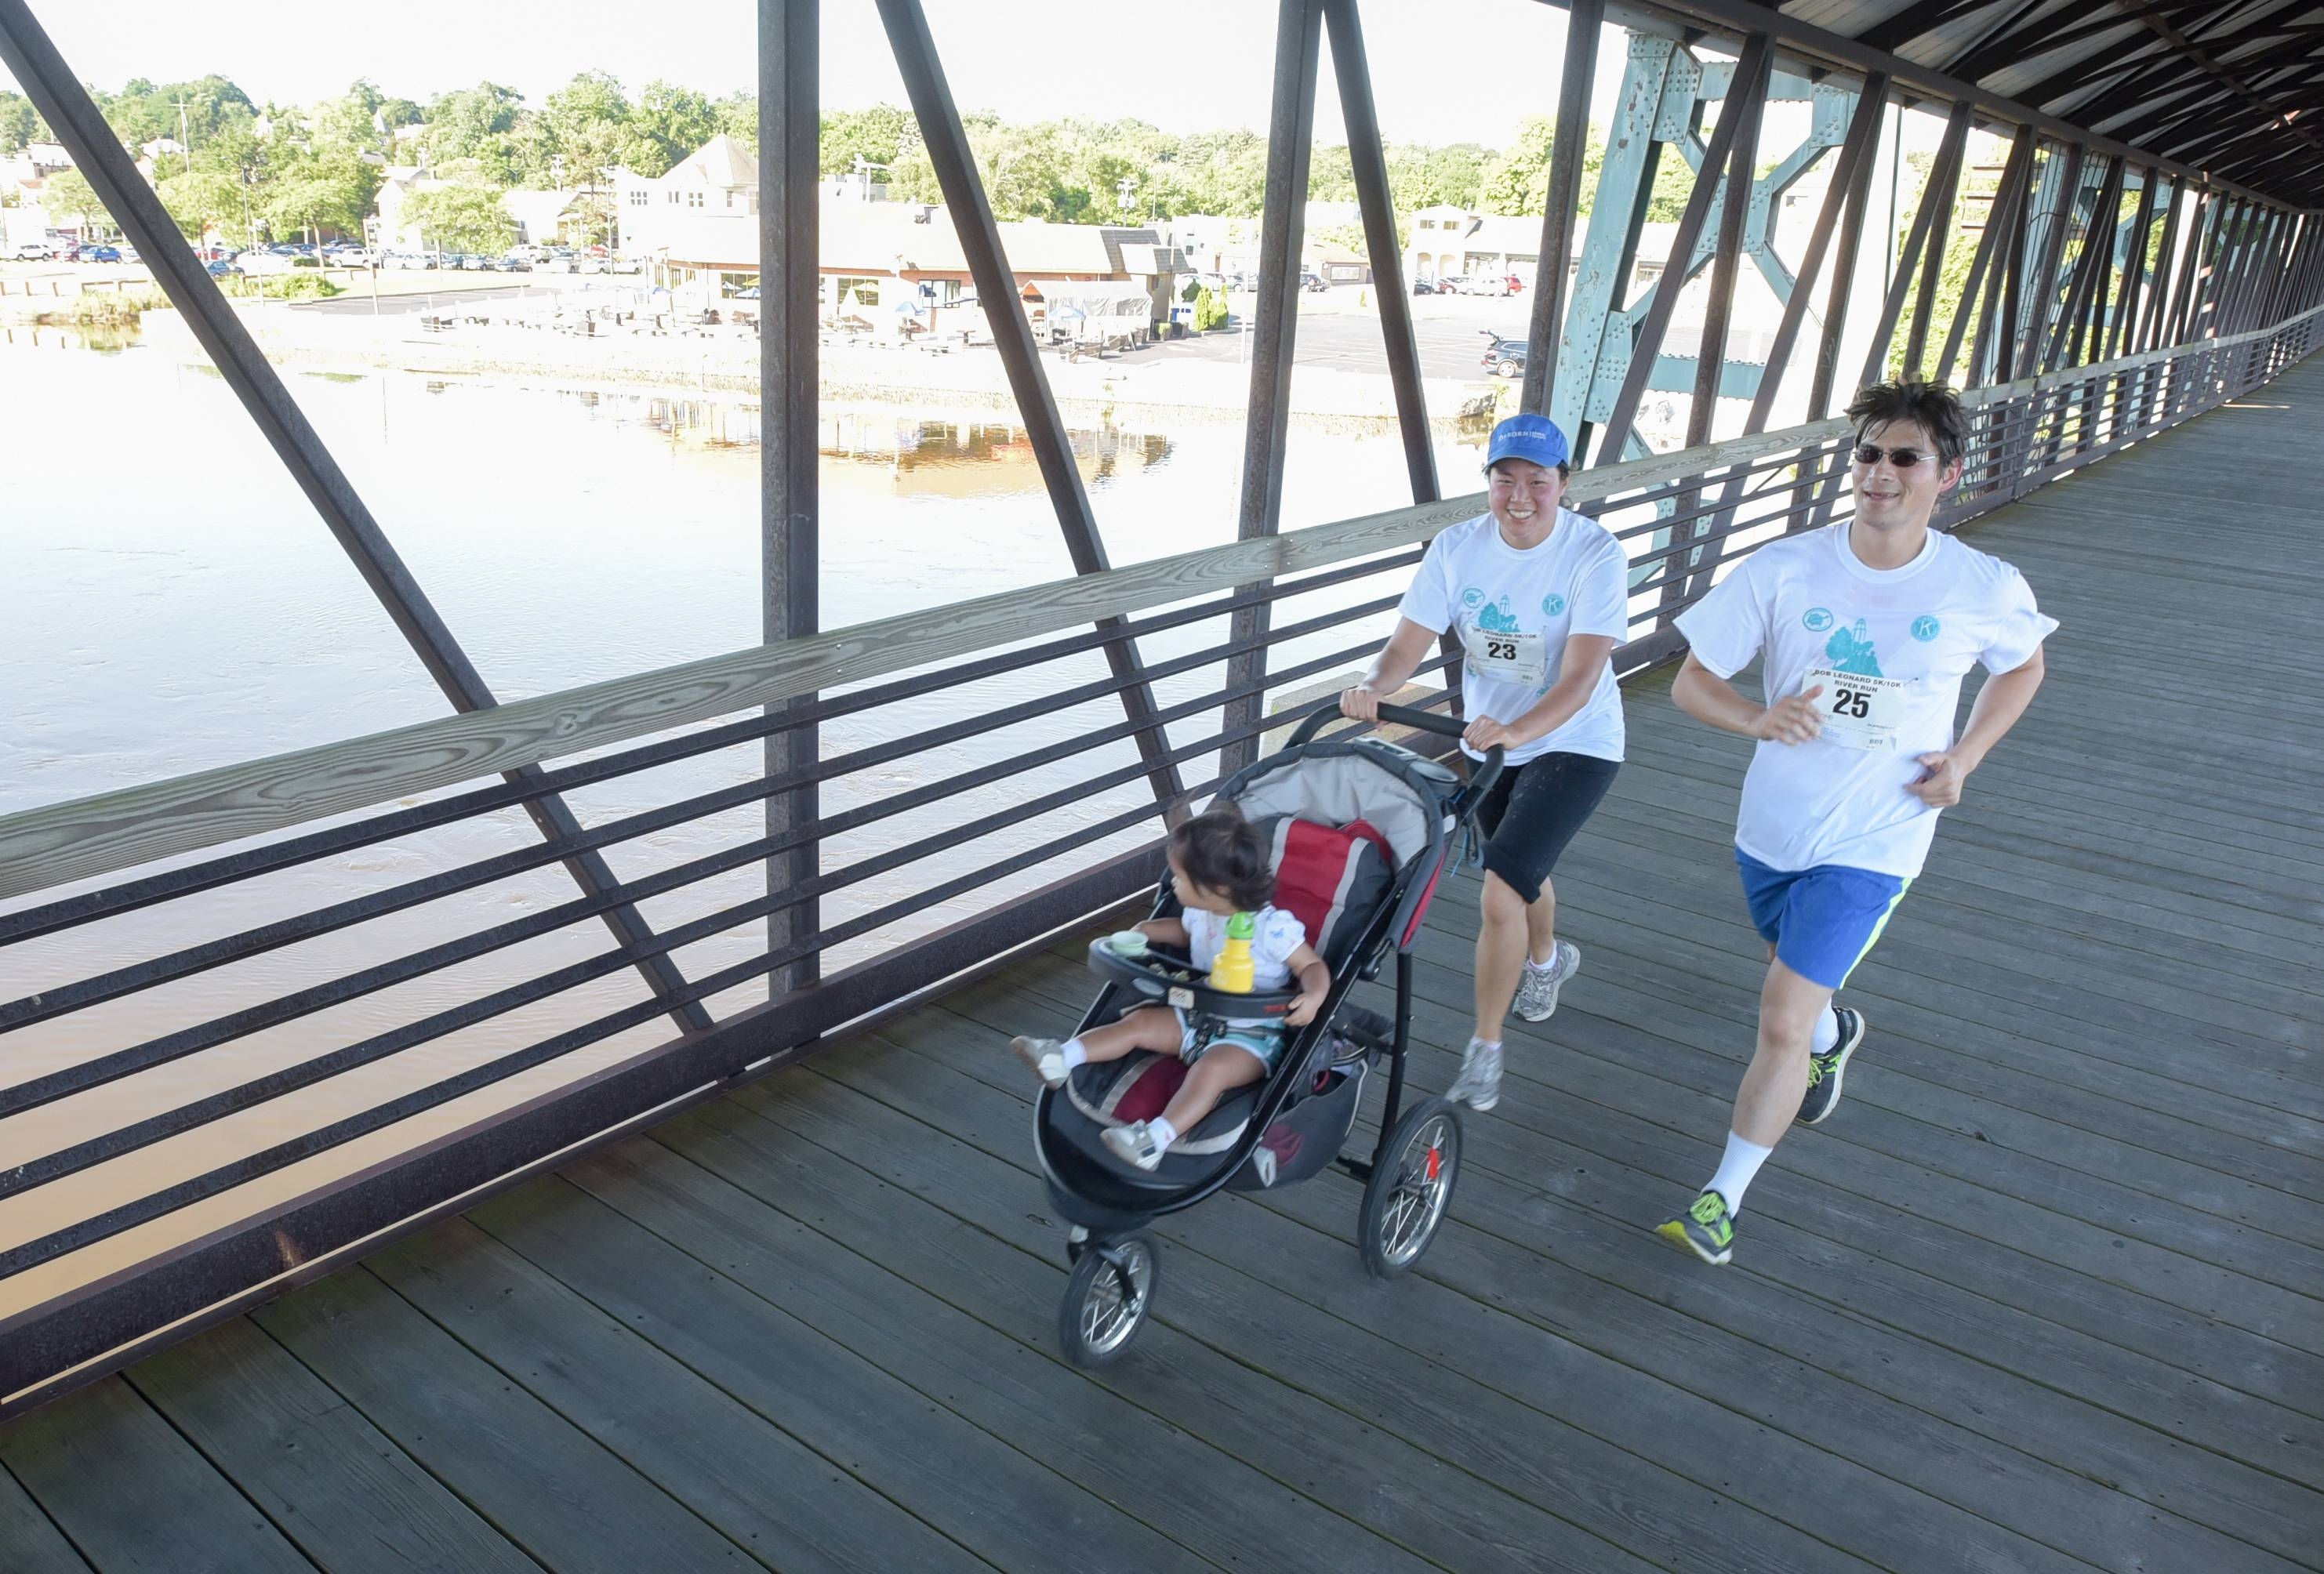 John Lang and Kim Hsu of St. Charles, along with daughter Katara Lang, participate in the Bob Leonard 5K/10K River Run at Pottawatomie Park in St. Charles Sunday.